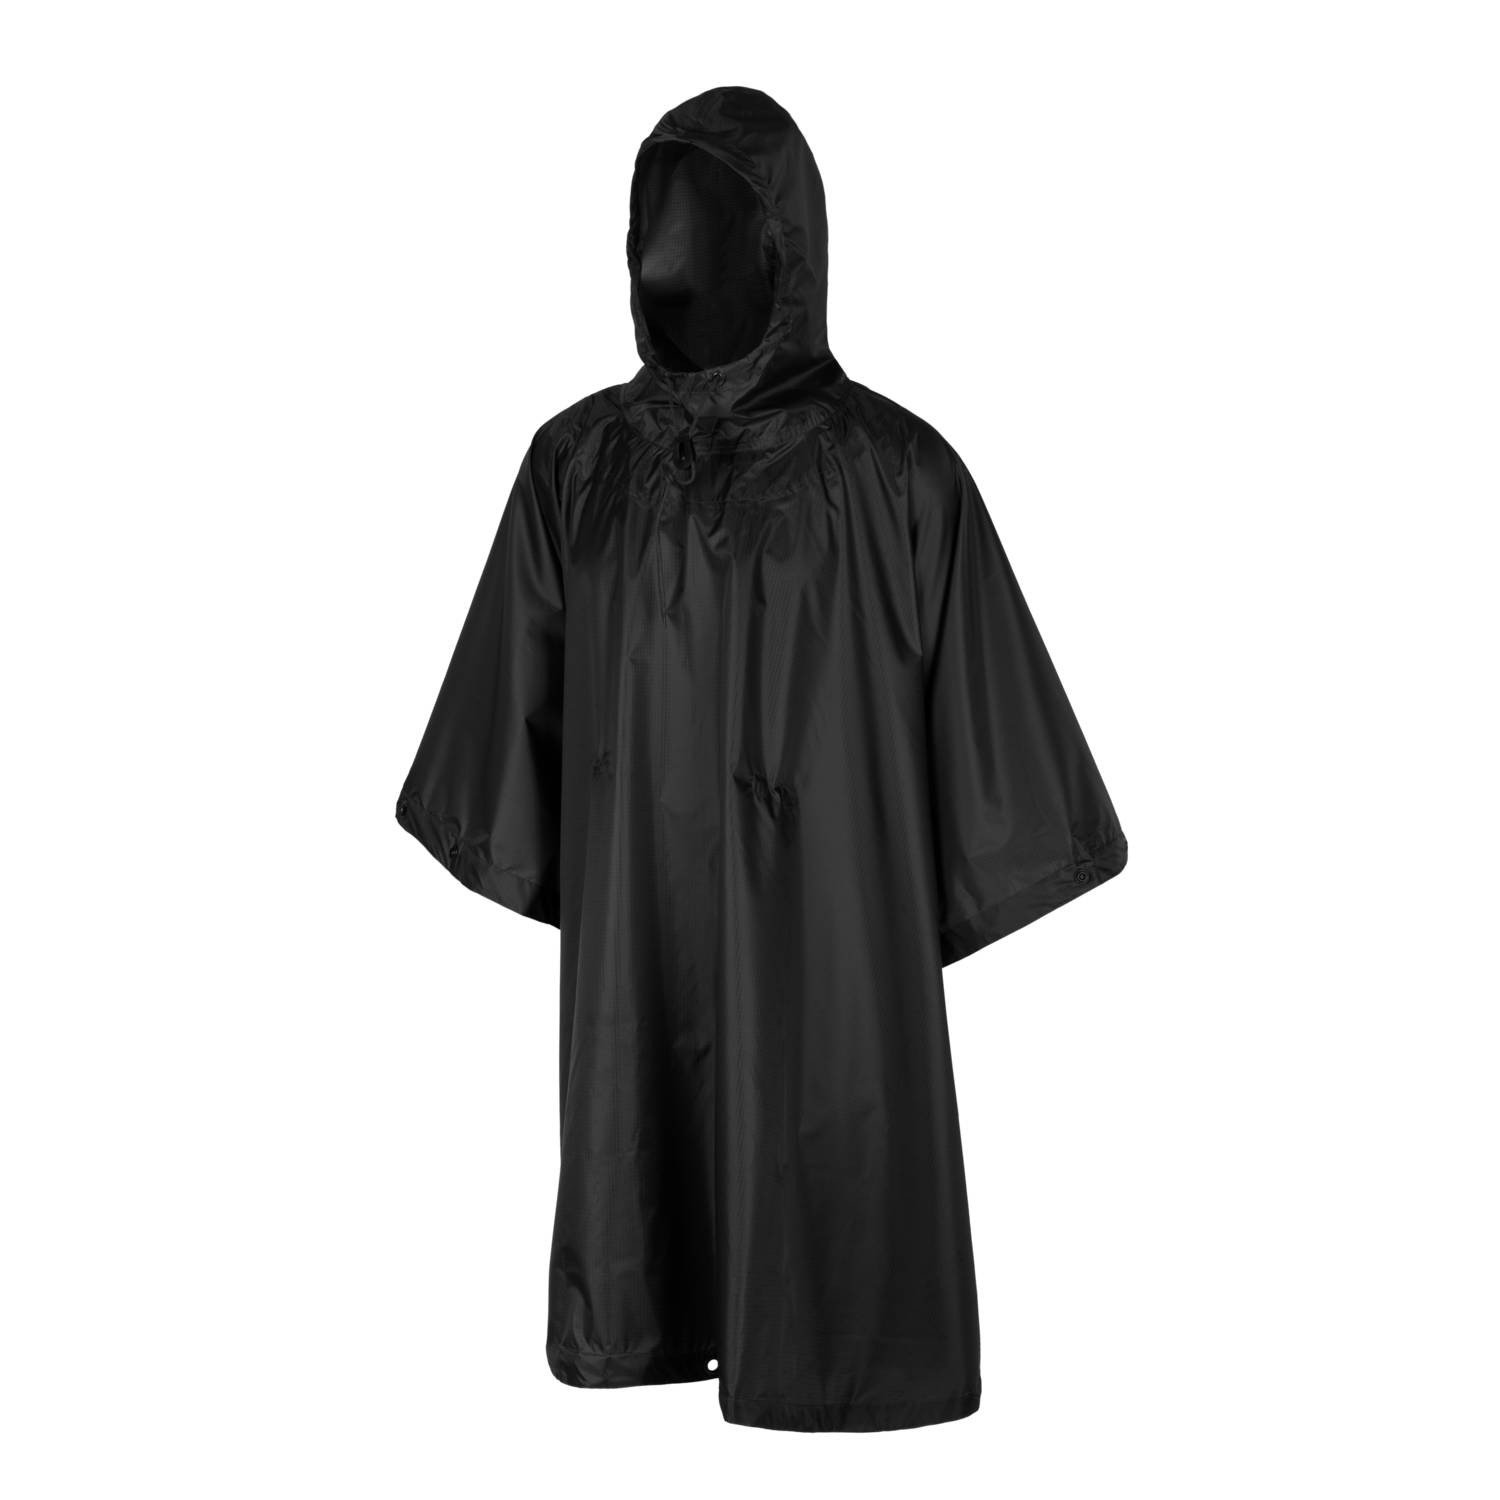 PONCHO U.S. MODEL - Black